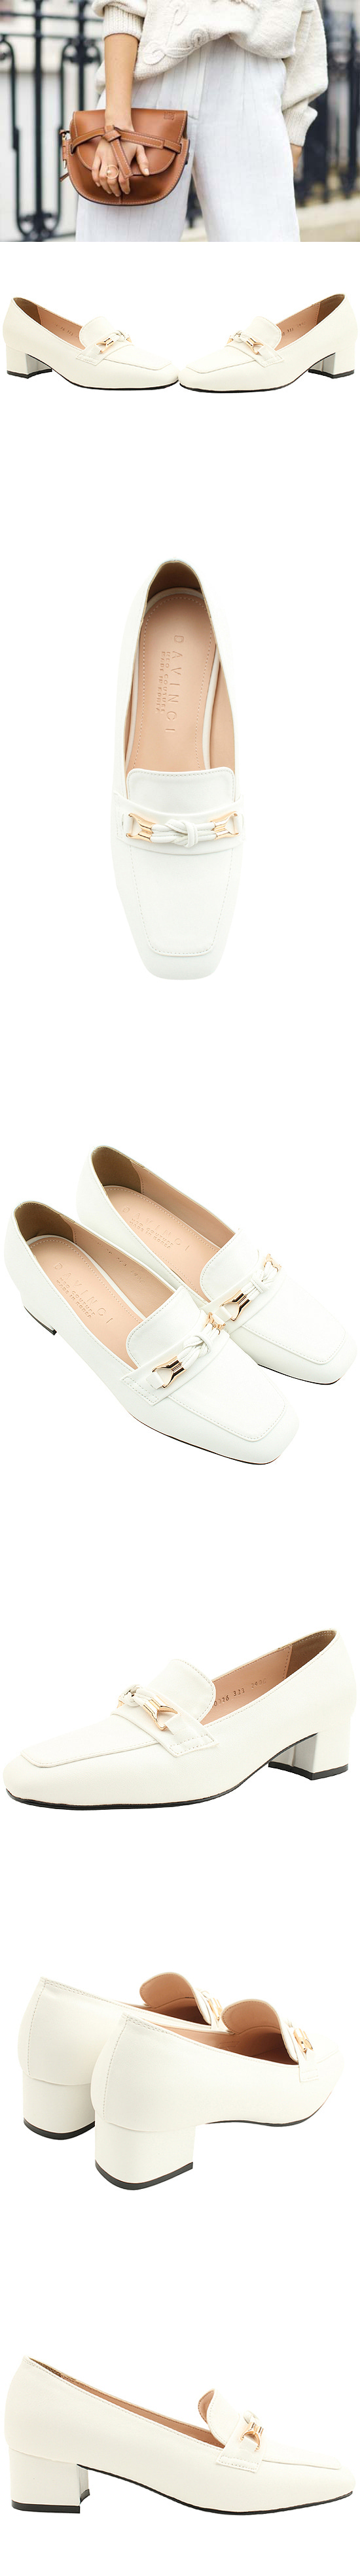 Knotted strap loafers middle heel pumps white